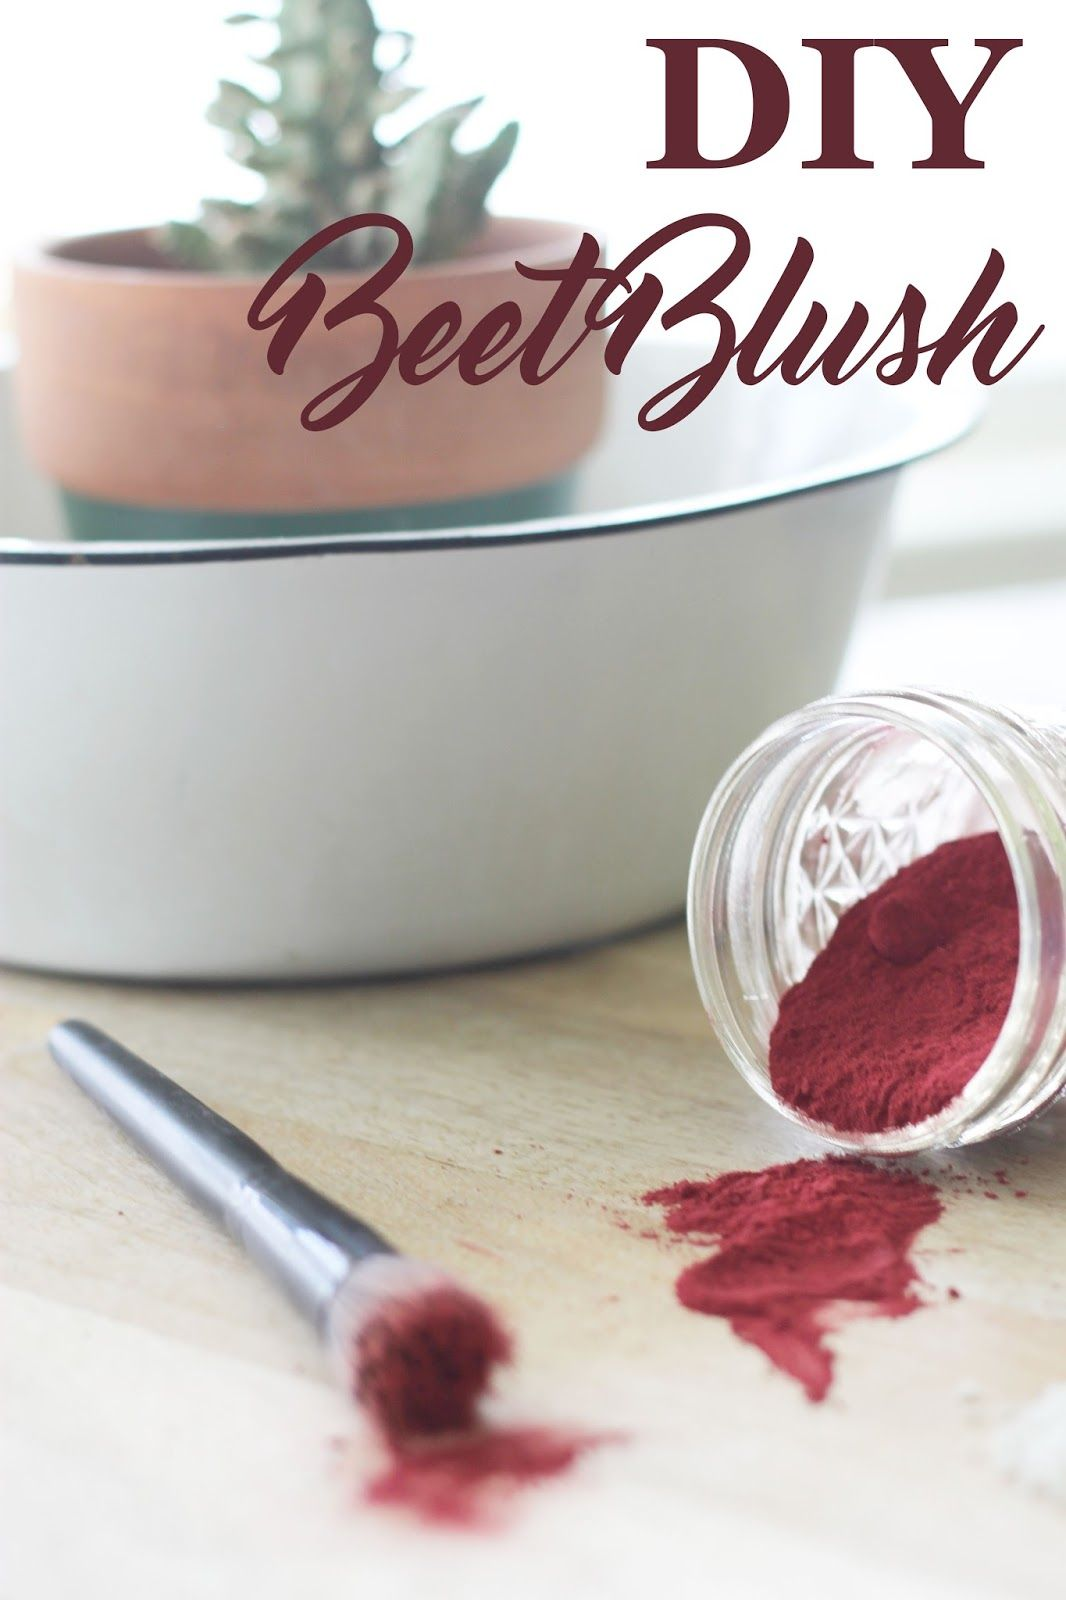 DIY Beet Blush (With images) Zero waste, Diy cosmetics